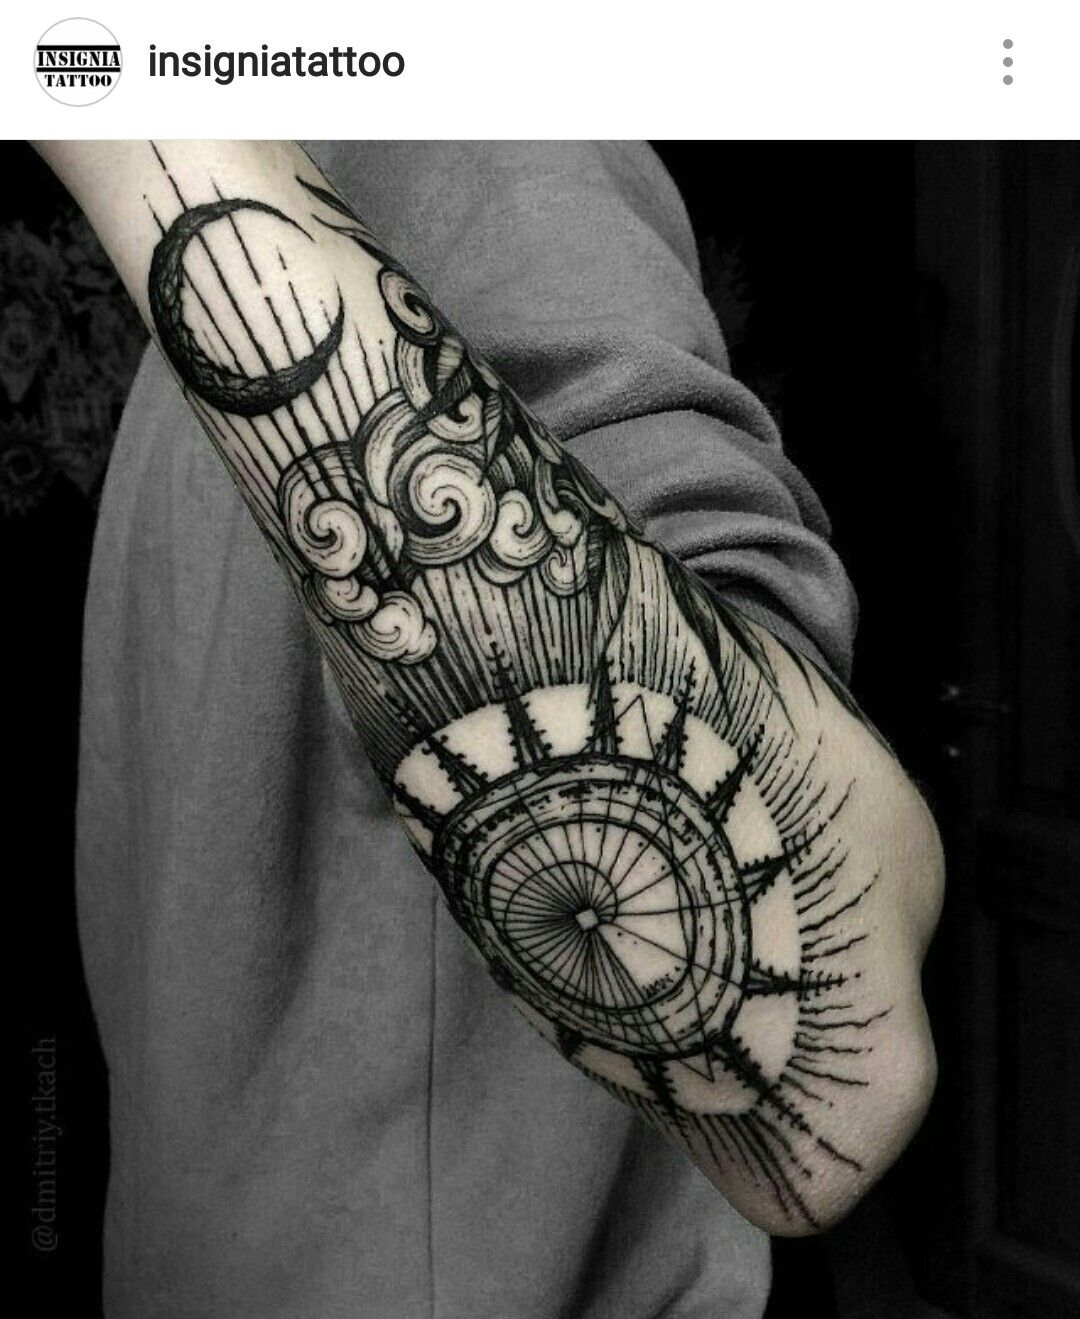 Pin By Ben H On Tattoo Ideas Tattoos Forearm Sleeve Ideas And Designs